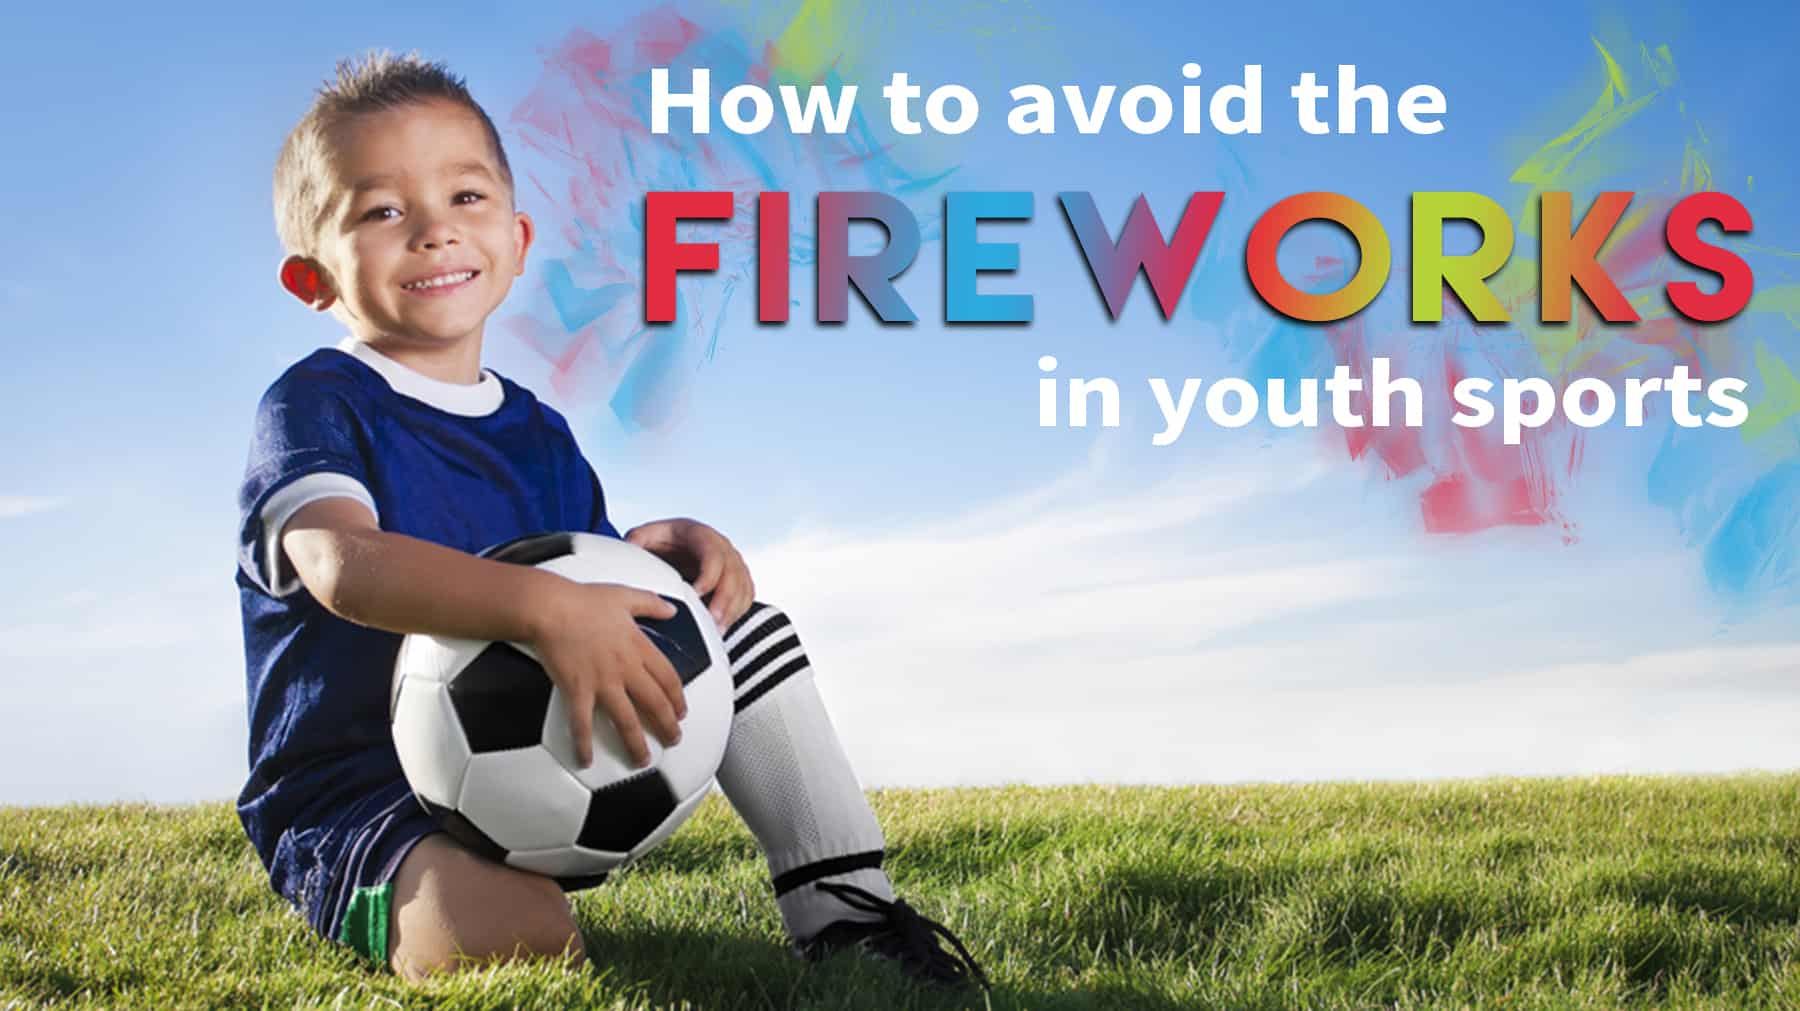 How To Avoid The Fireworks In Youth Sports